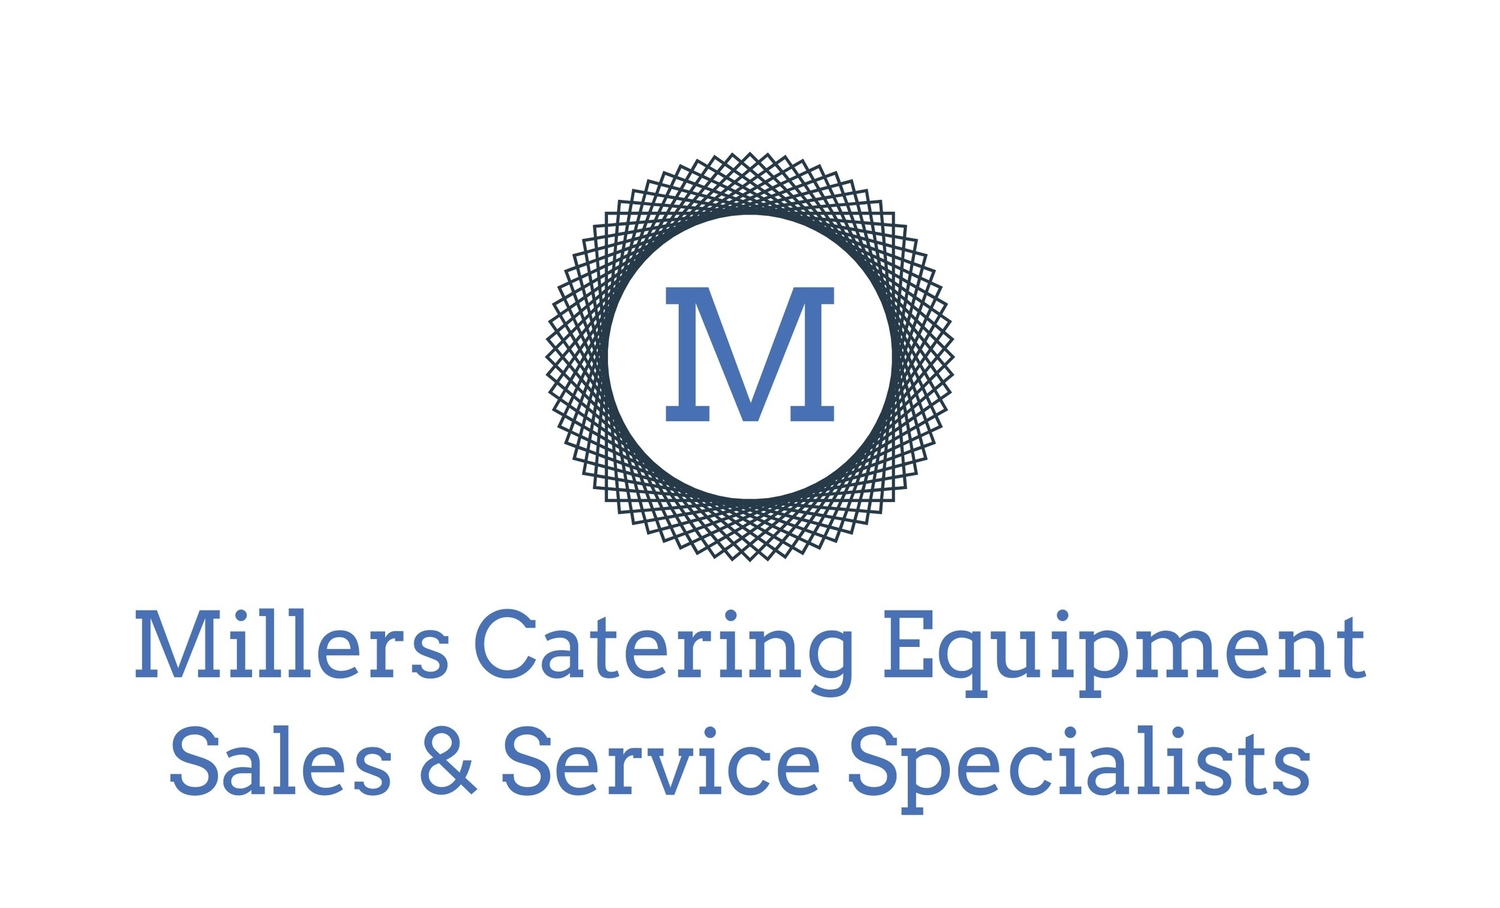 Millers Catering Equipment